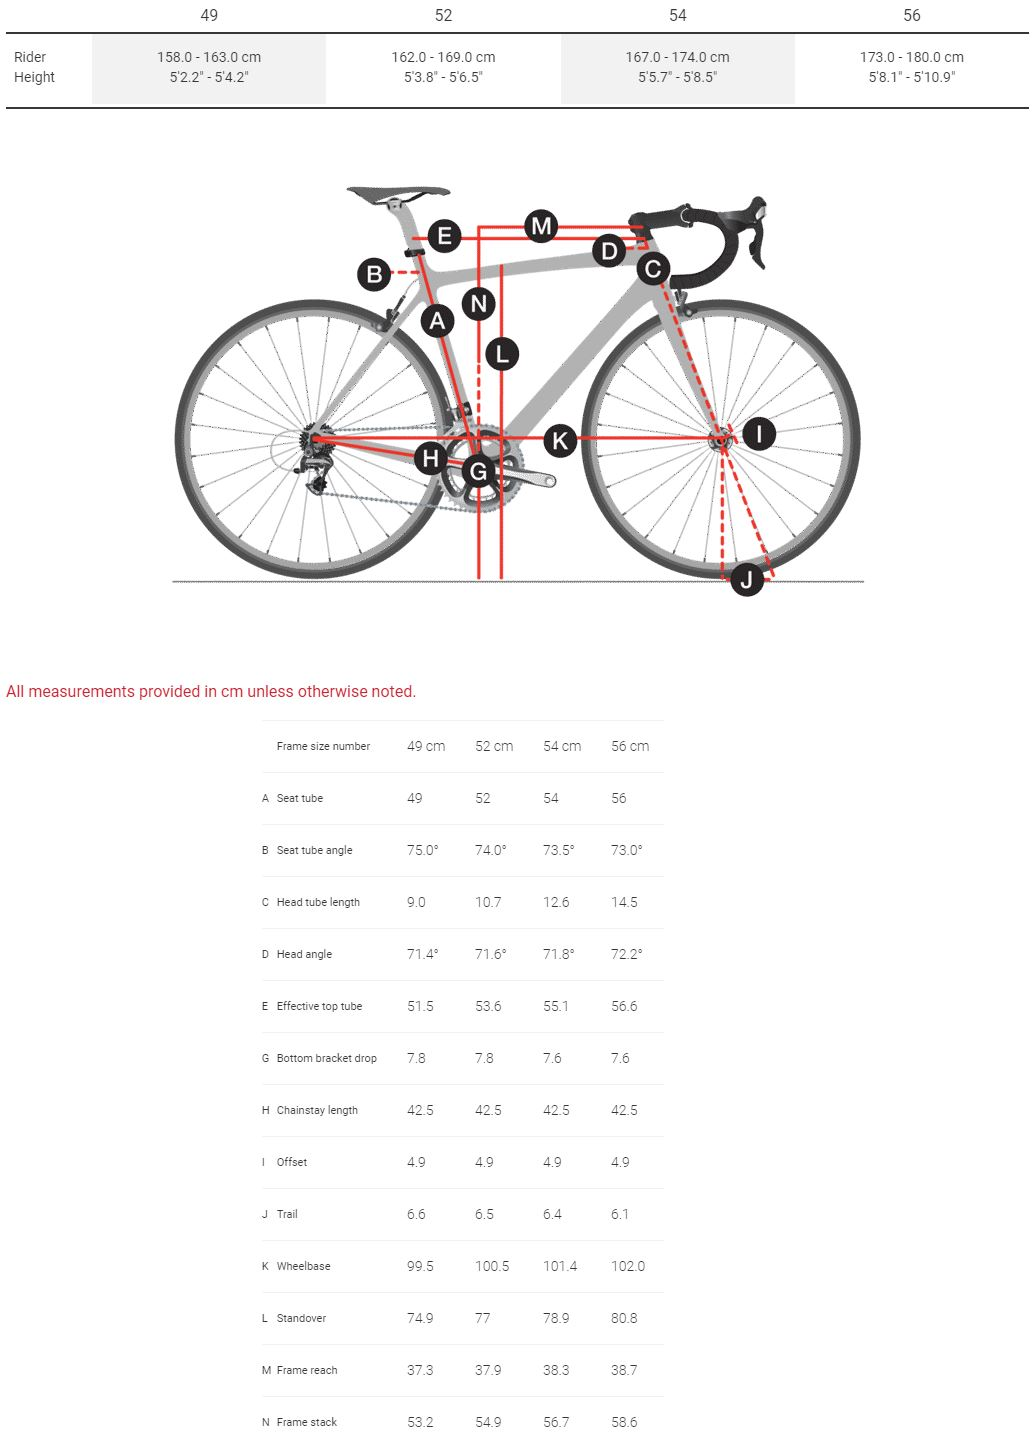 Trek Checkpoint Women's Geometry Chart